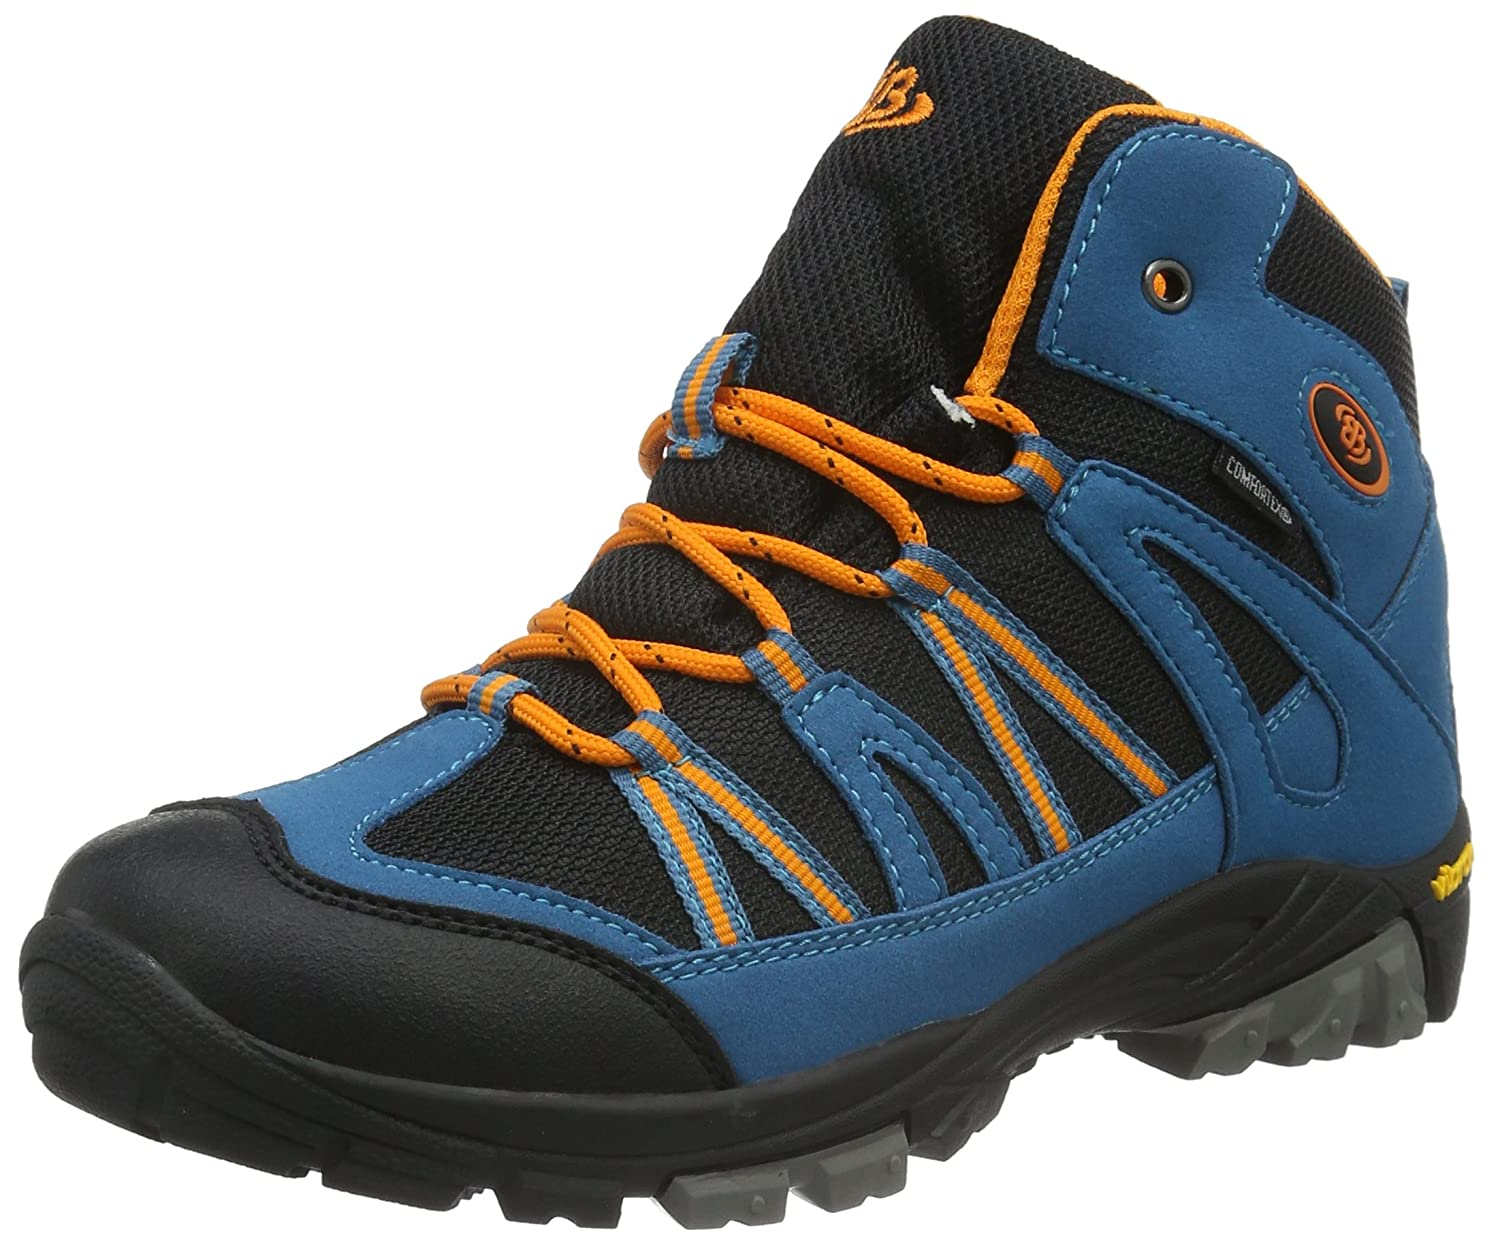 EB kids Unisex-Kinder Ohio High Trekking-& Wanderstiefel